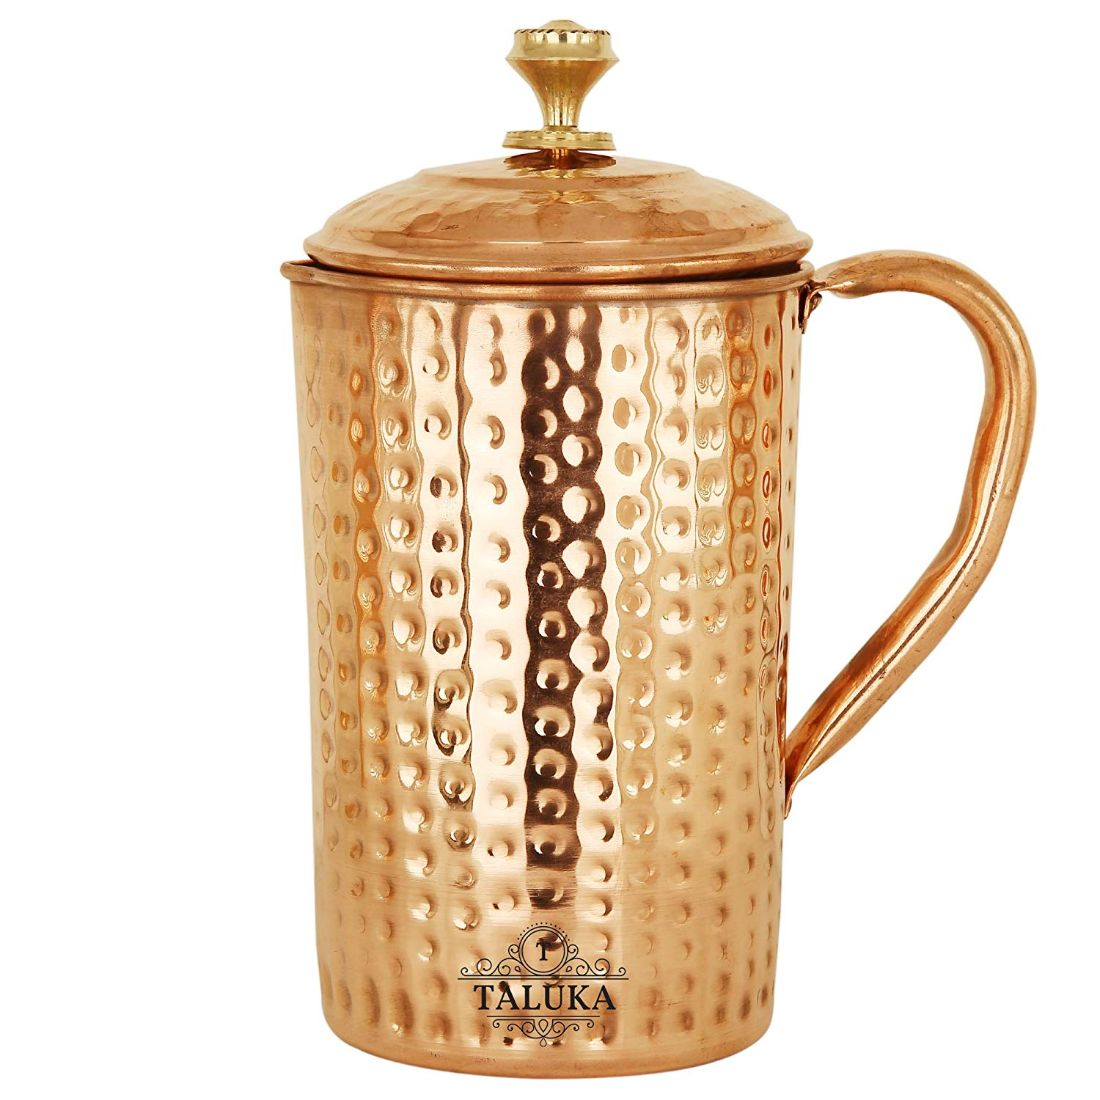 Copper Hammer Jug Pitcher 1.7 Liter With Water Pot 12 Liter Tank 1 Glass 350 ML